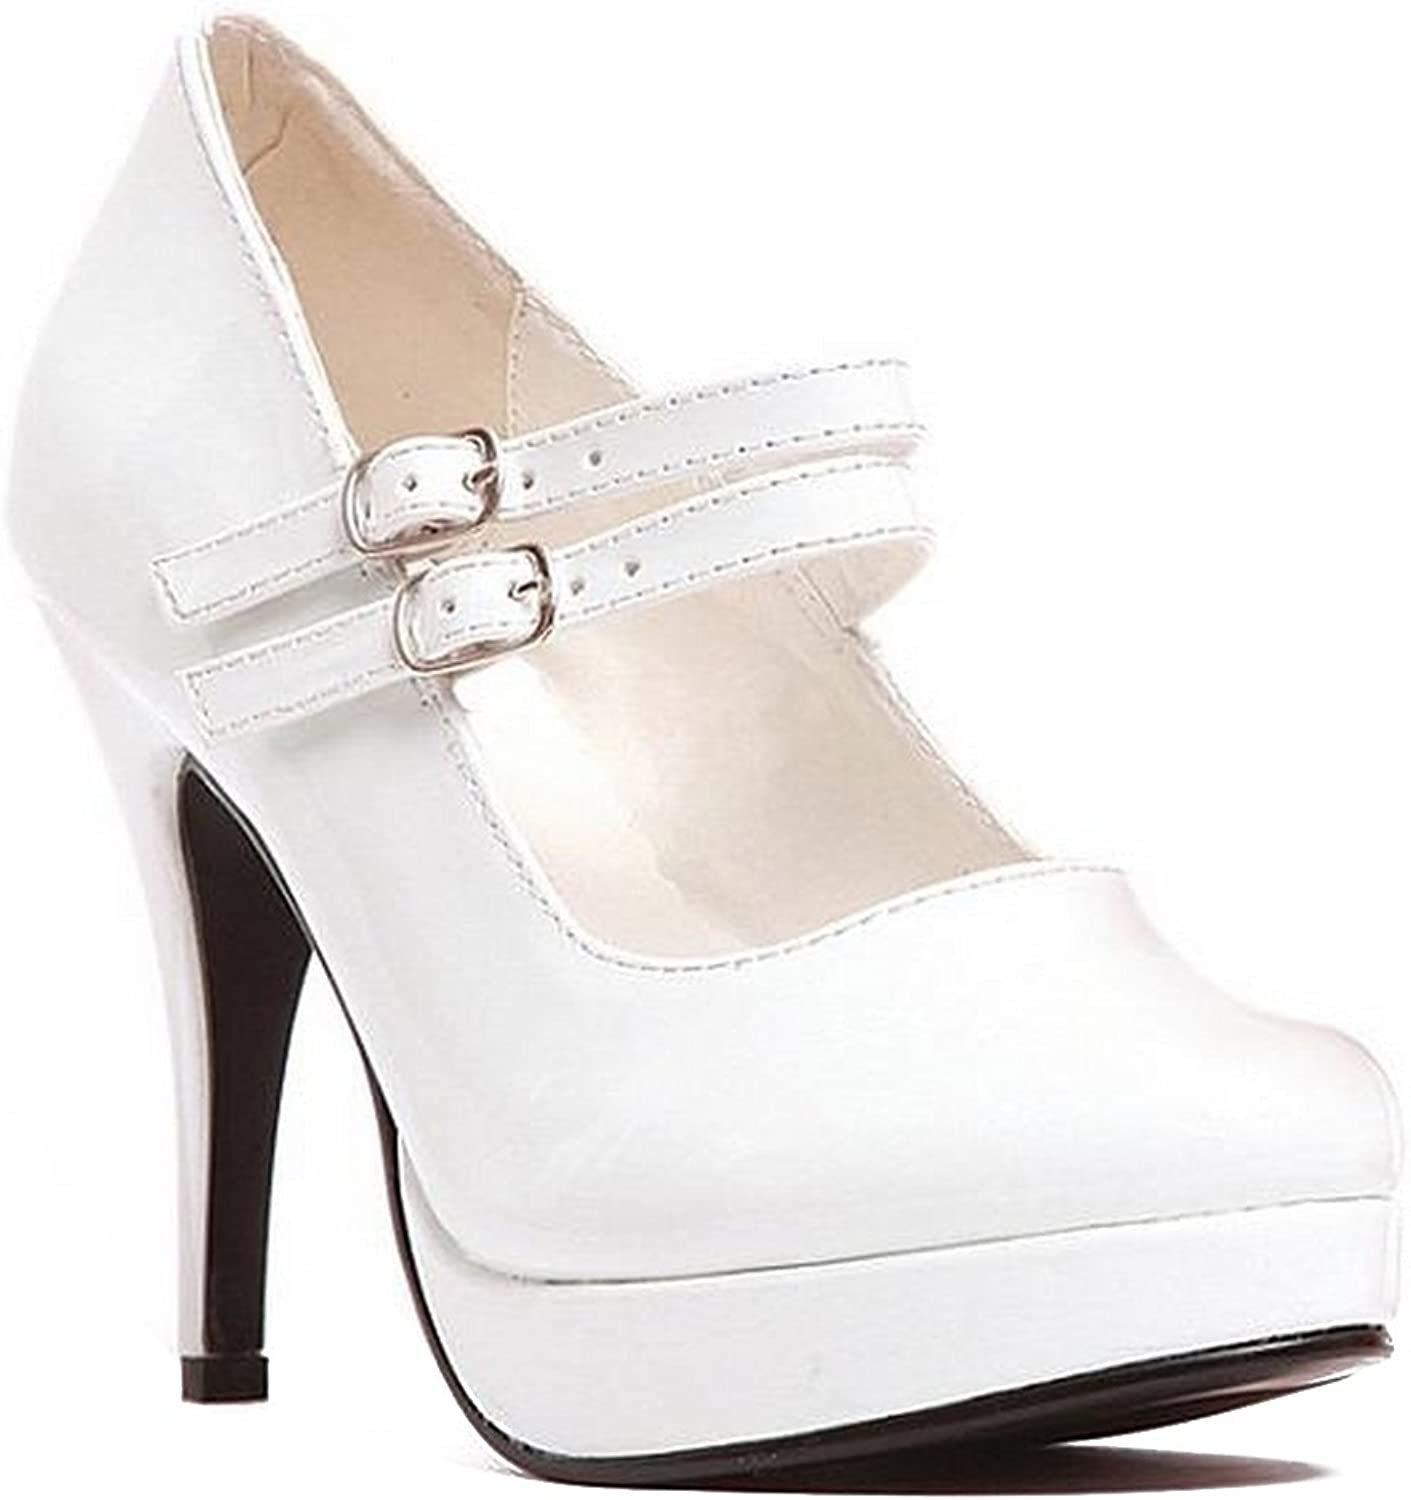 Ellie shoes Women's 421-Jane Platform Pump White